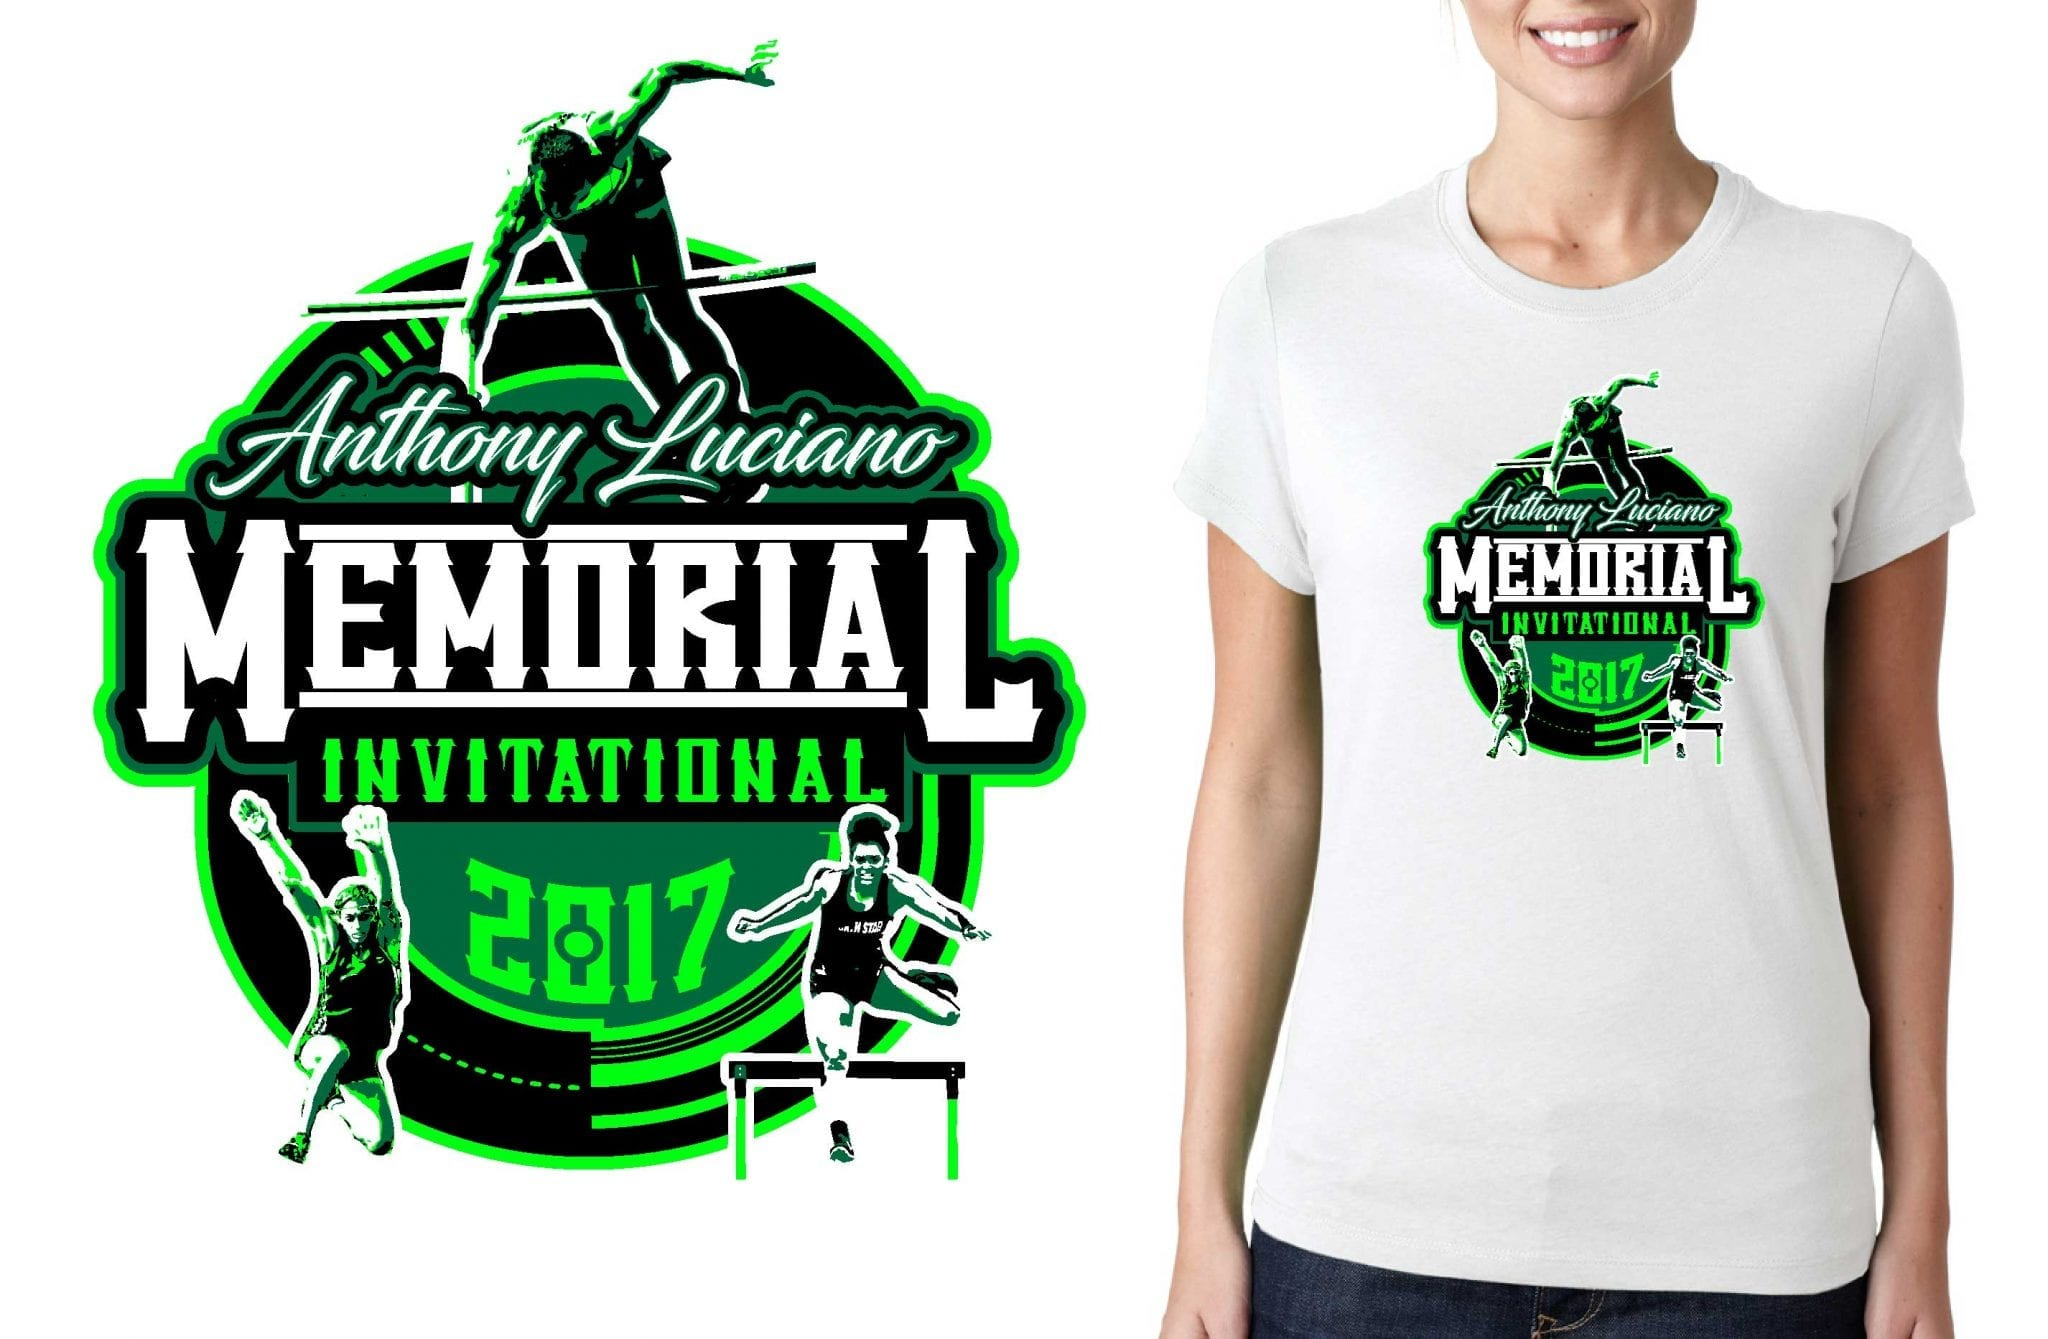 Track And Field T Shirt Logo Design Anthony Luciano Memorial